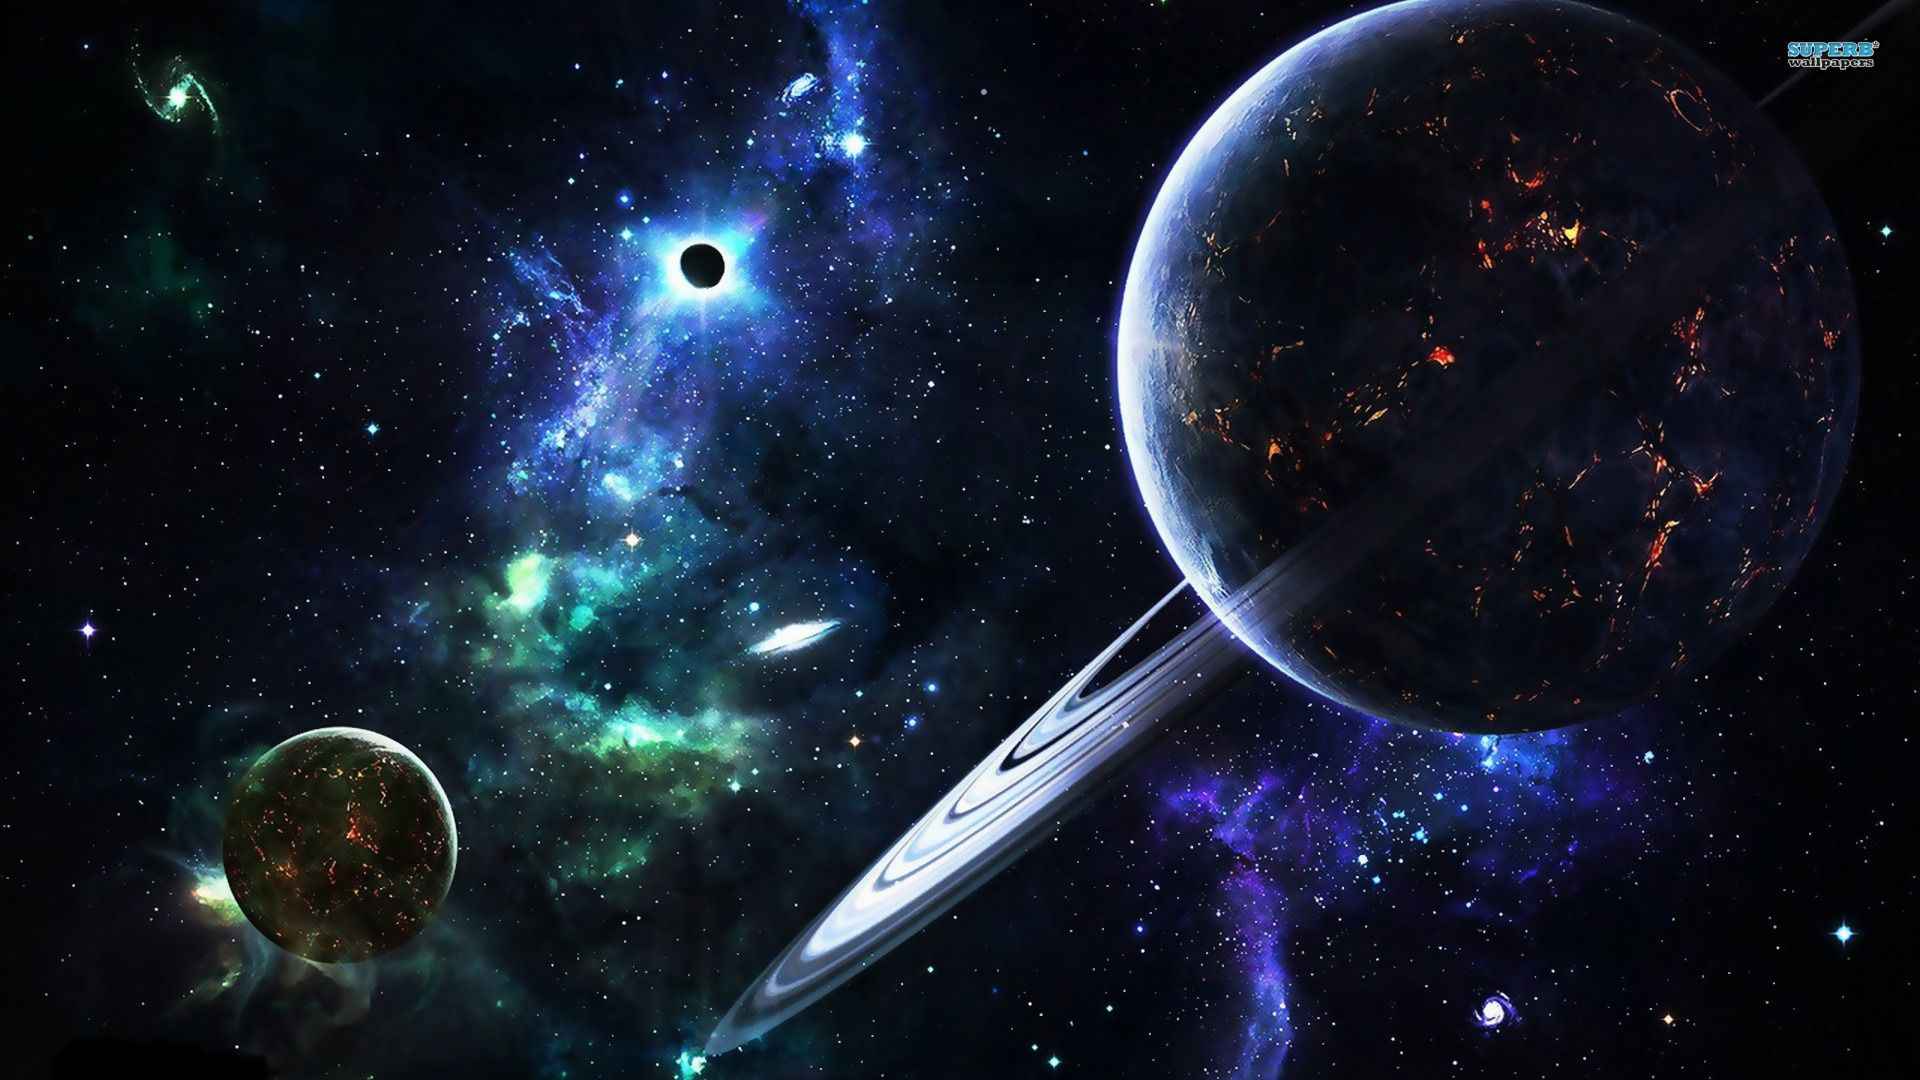 Galaxy Theme Wallpaper Space art wallpaper, Wallpaper